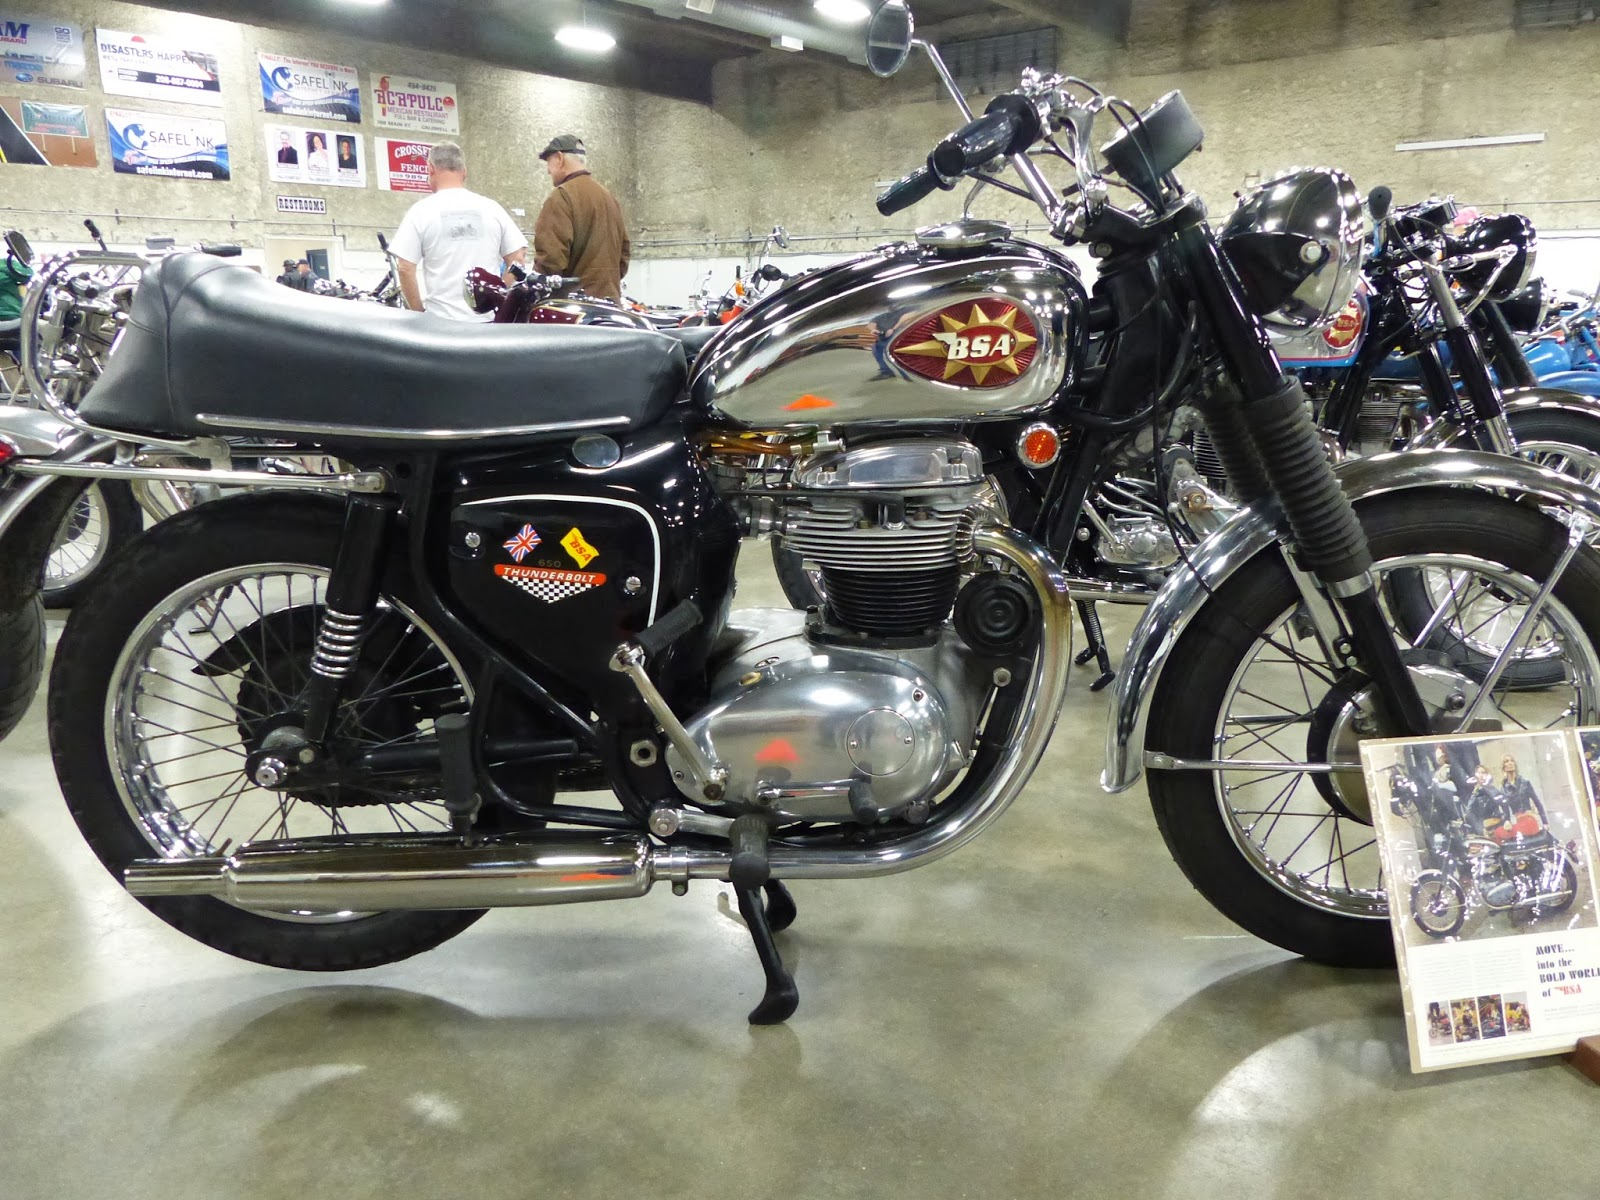 1968 BSA A65 650cc Thunderbolt On Display At The 2016 Idaho Vintage Motorcycle Show Caldwell Id